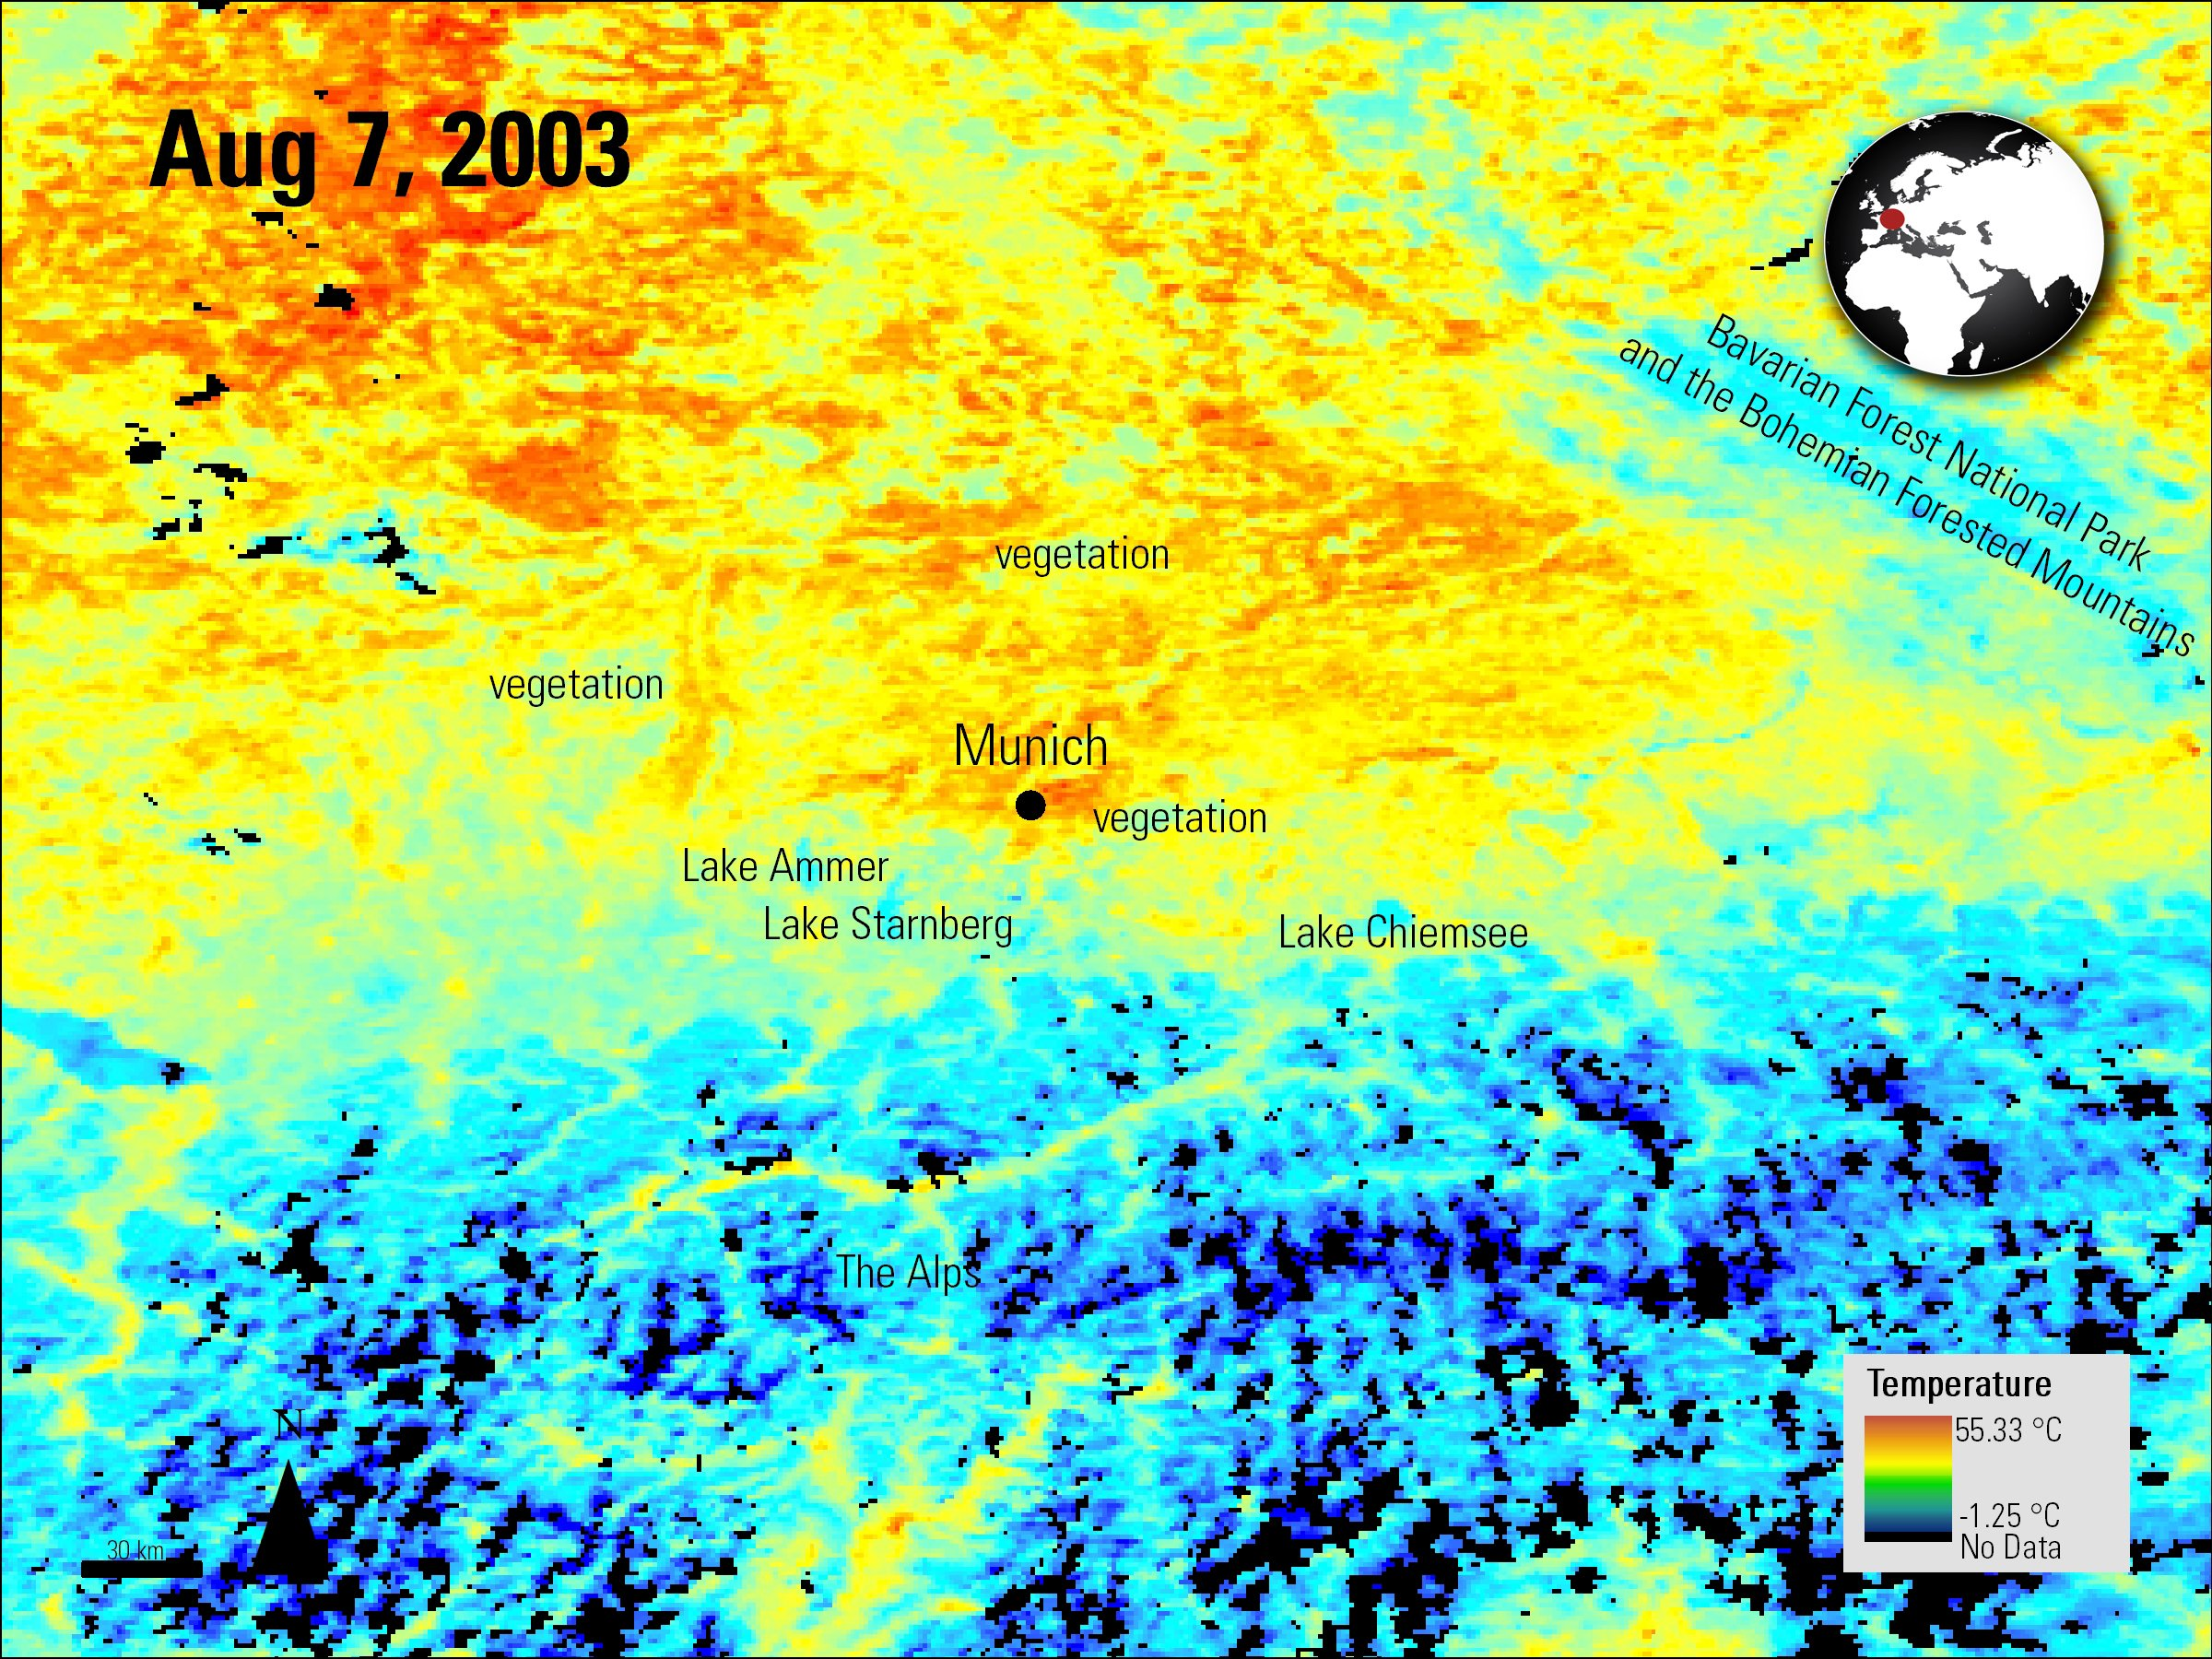 Aqua MODIS daytime land surface temperature data over Munich, Germany.